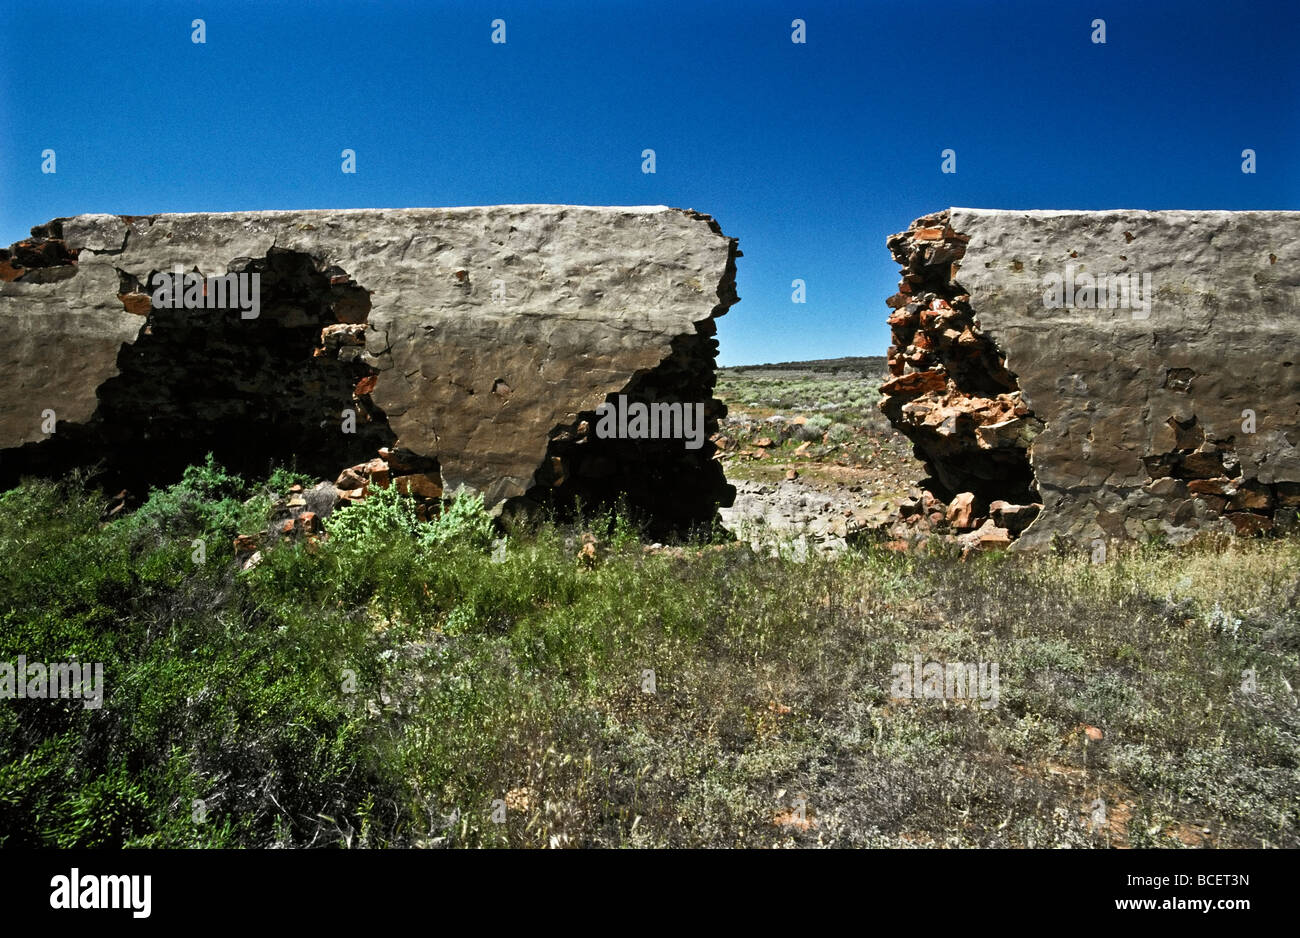 Desert floodwaters demolish a hole in a nineteenth century dam wall. - Stock Image